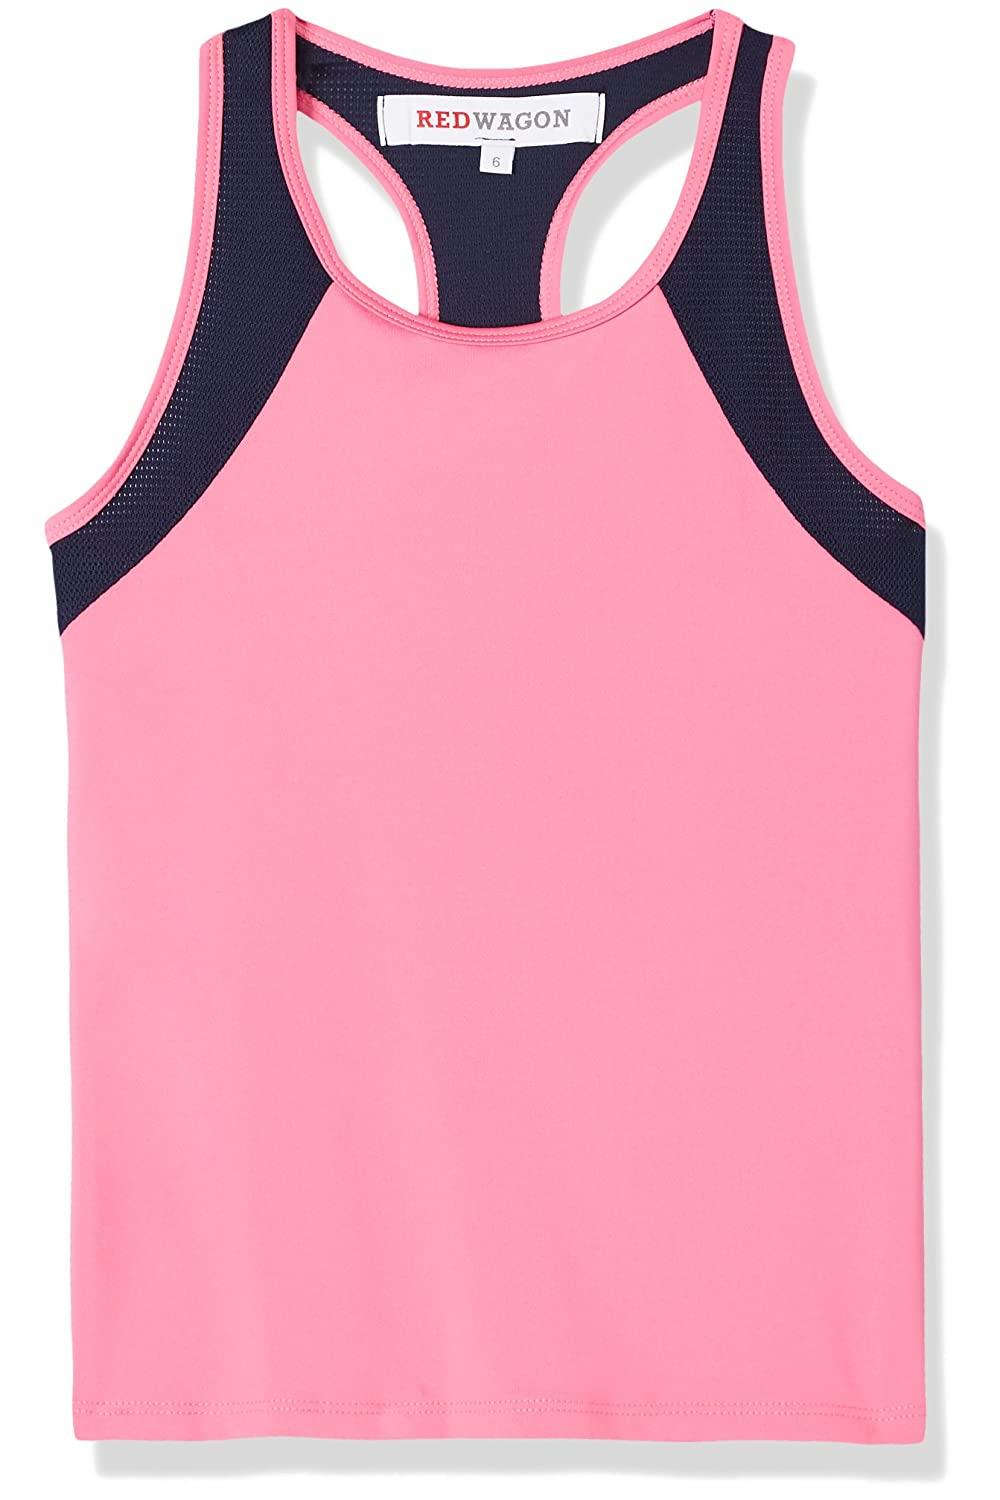 eb18c4803 RED WAGON Girl s Contrast Colour Mesh Sports Vest  Amazon.co.uk  Clothing